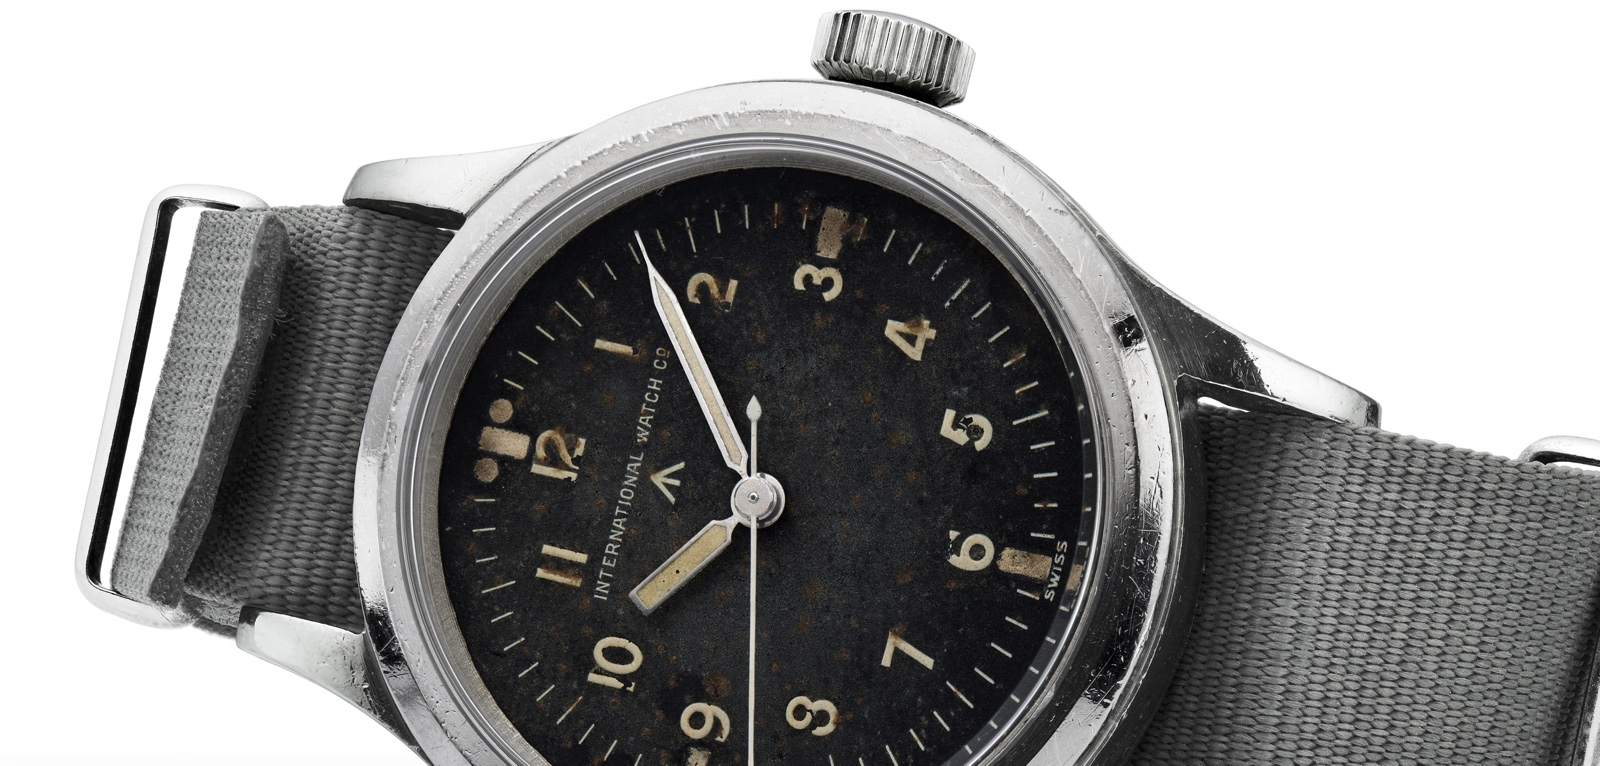 IWC Pilots Watch Timeline Cover